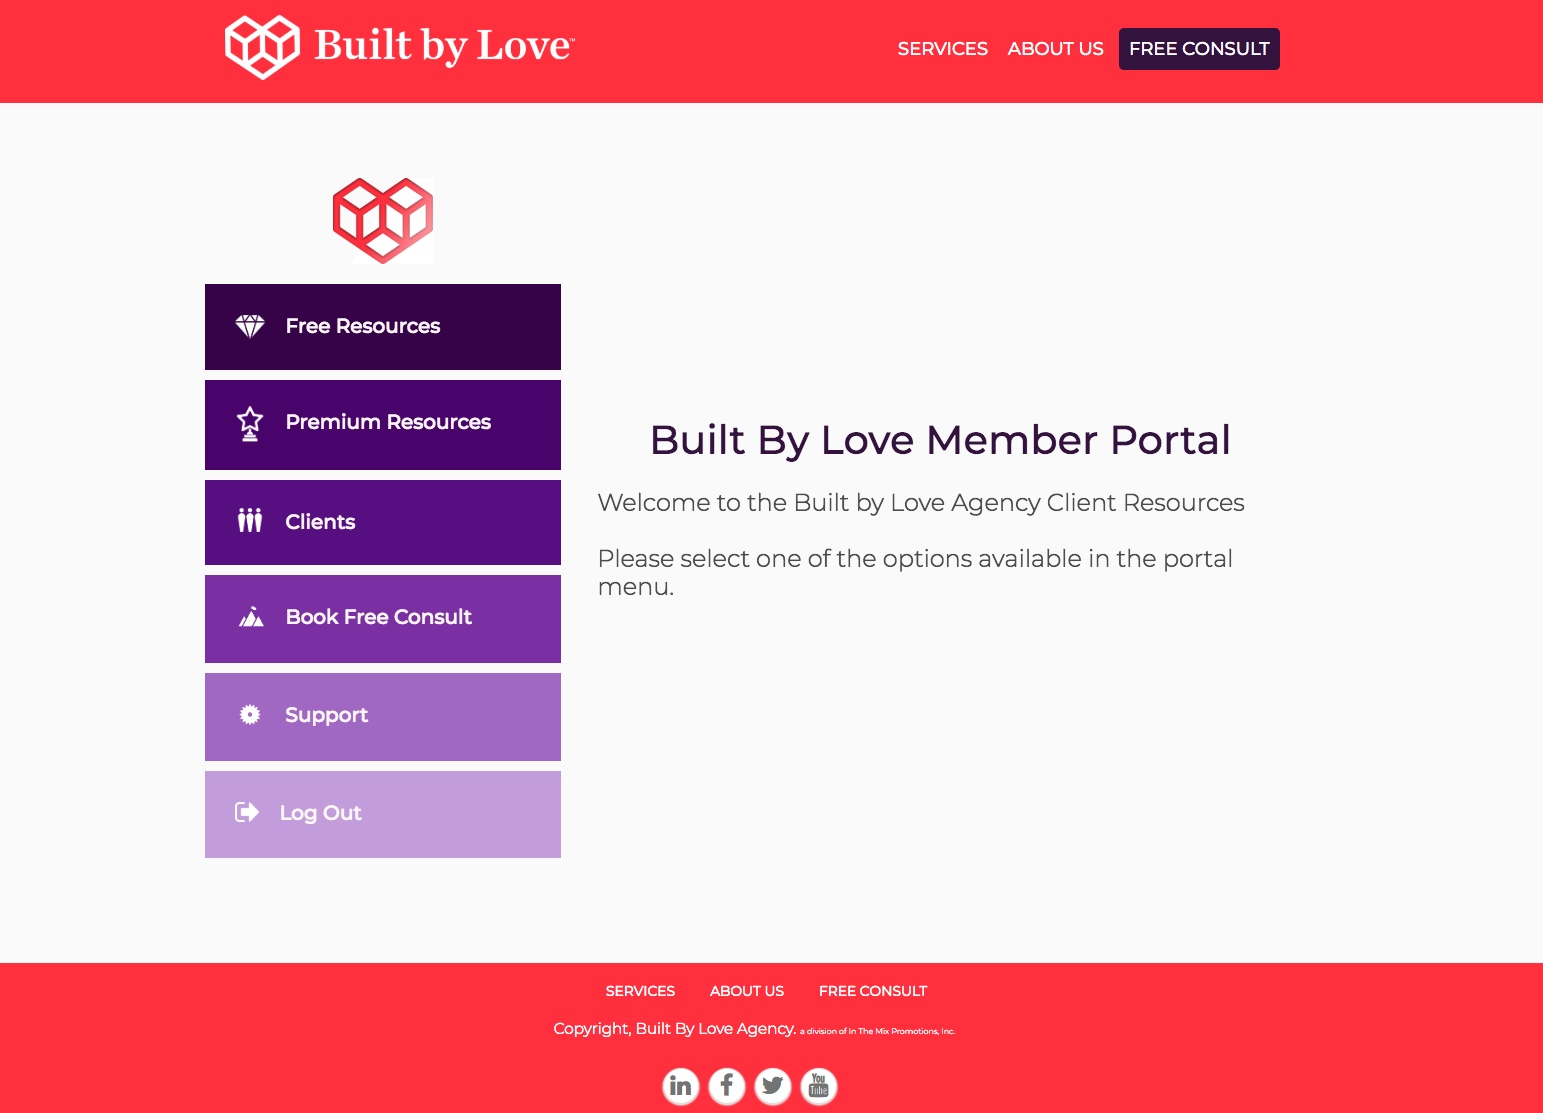 Built By Love AccessAlly Portal - The Ultimate Tools The Pros Use Guide